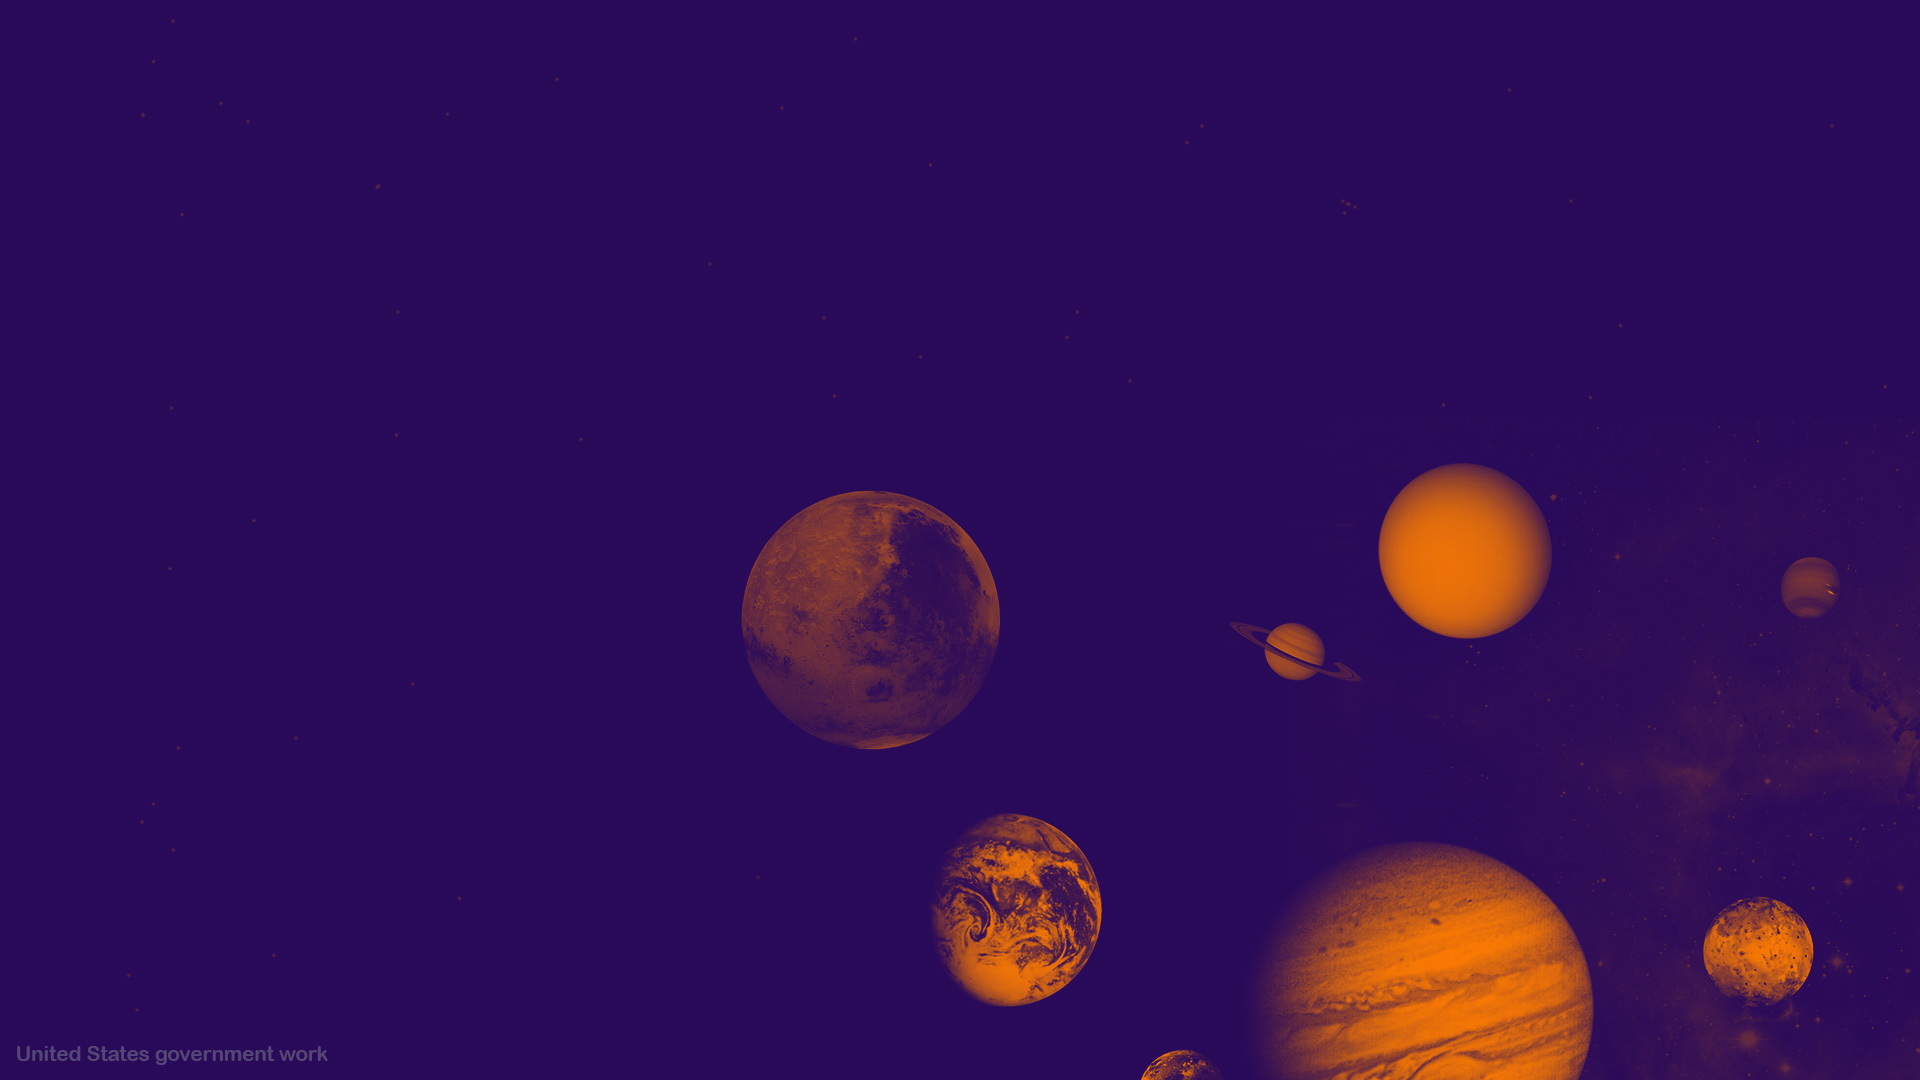 Planets in Space Background optimized for presentations